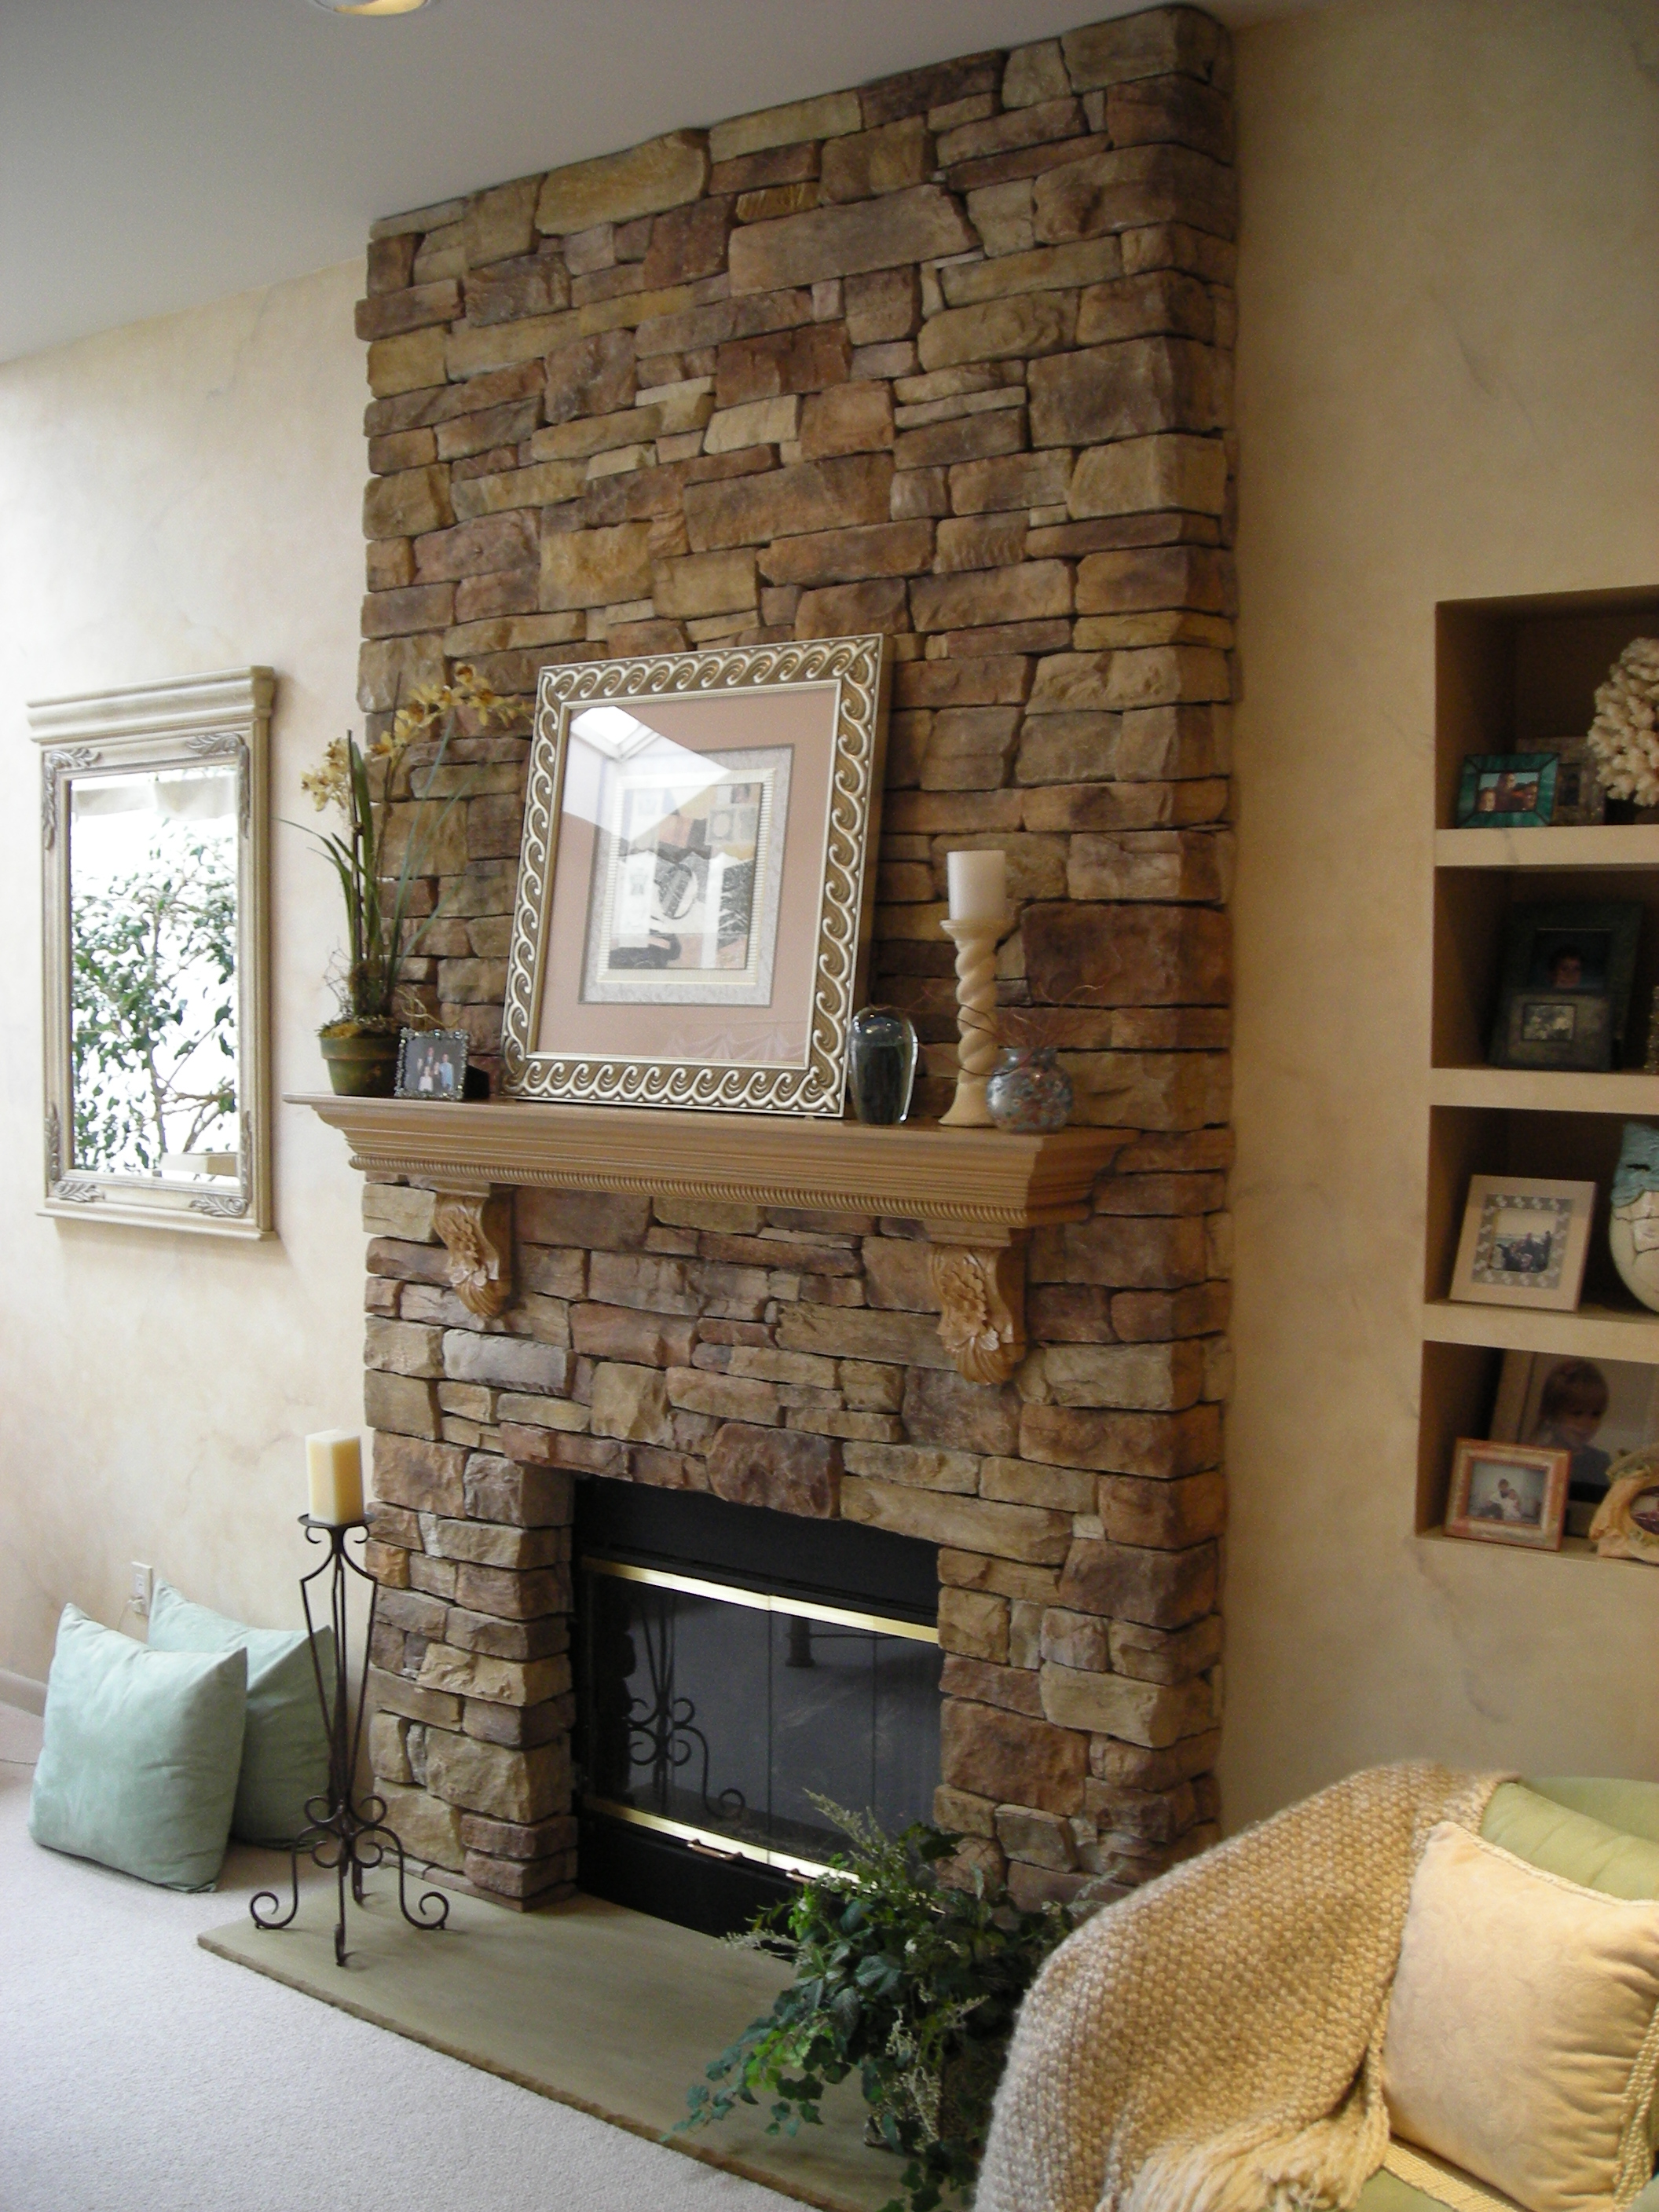 Stone Veneer panels Fireplace with pictures and mirror on wall for family room ideas